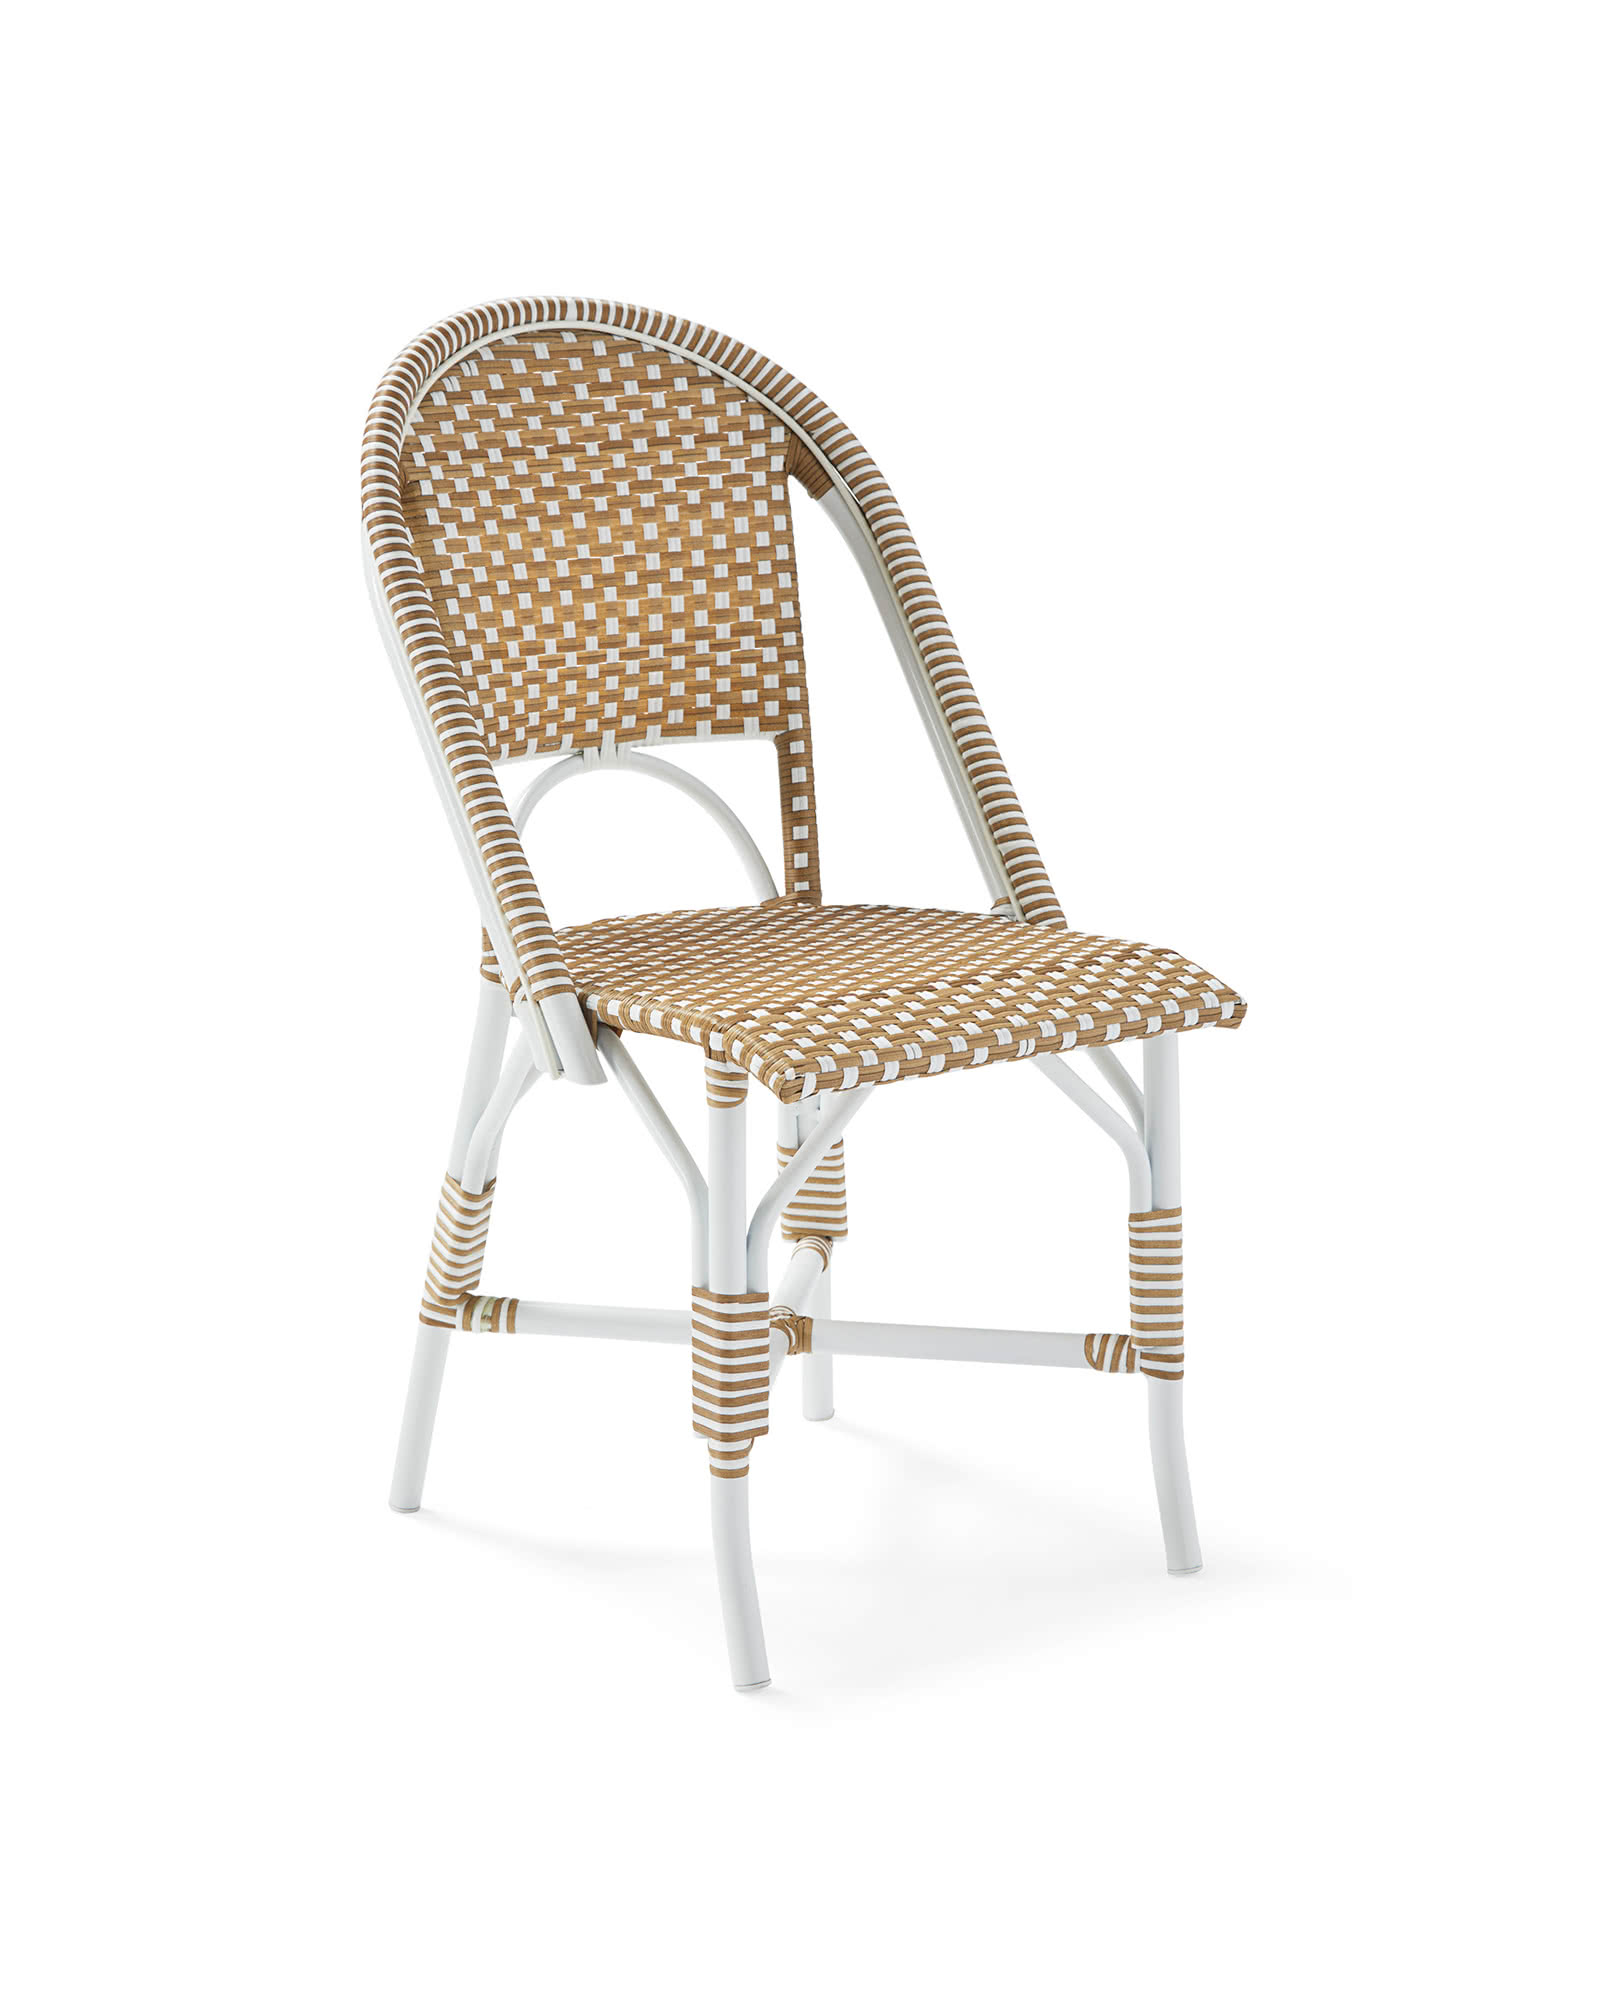 Furn_Riviera_All_Weather_Side_Chair_White_Dune_Angle_MV_0034_Crop_SH.jpg